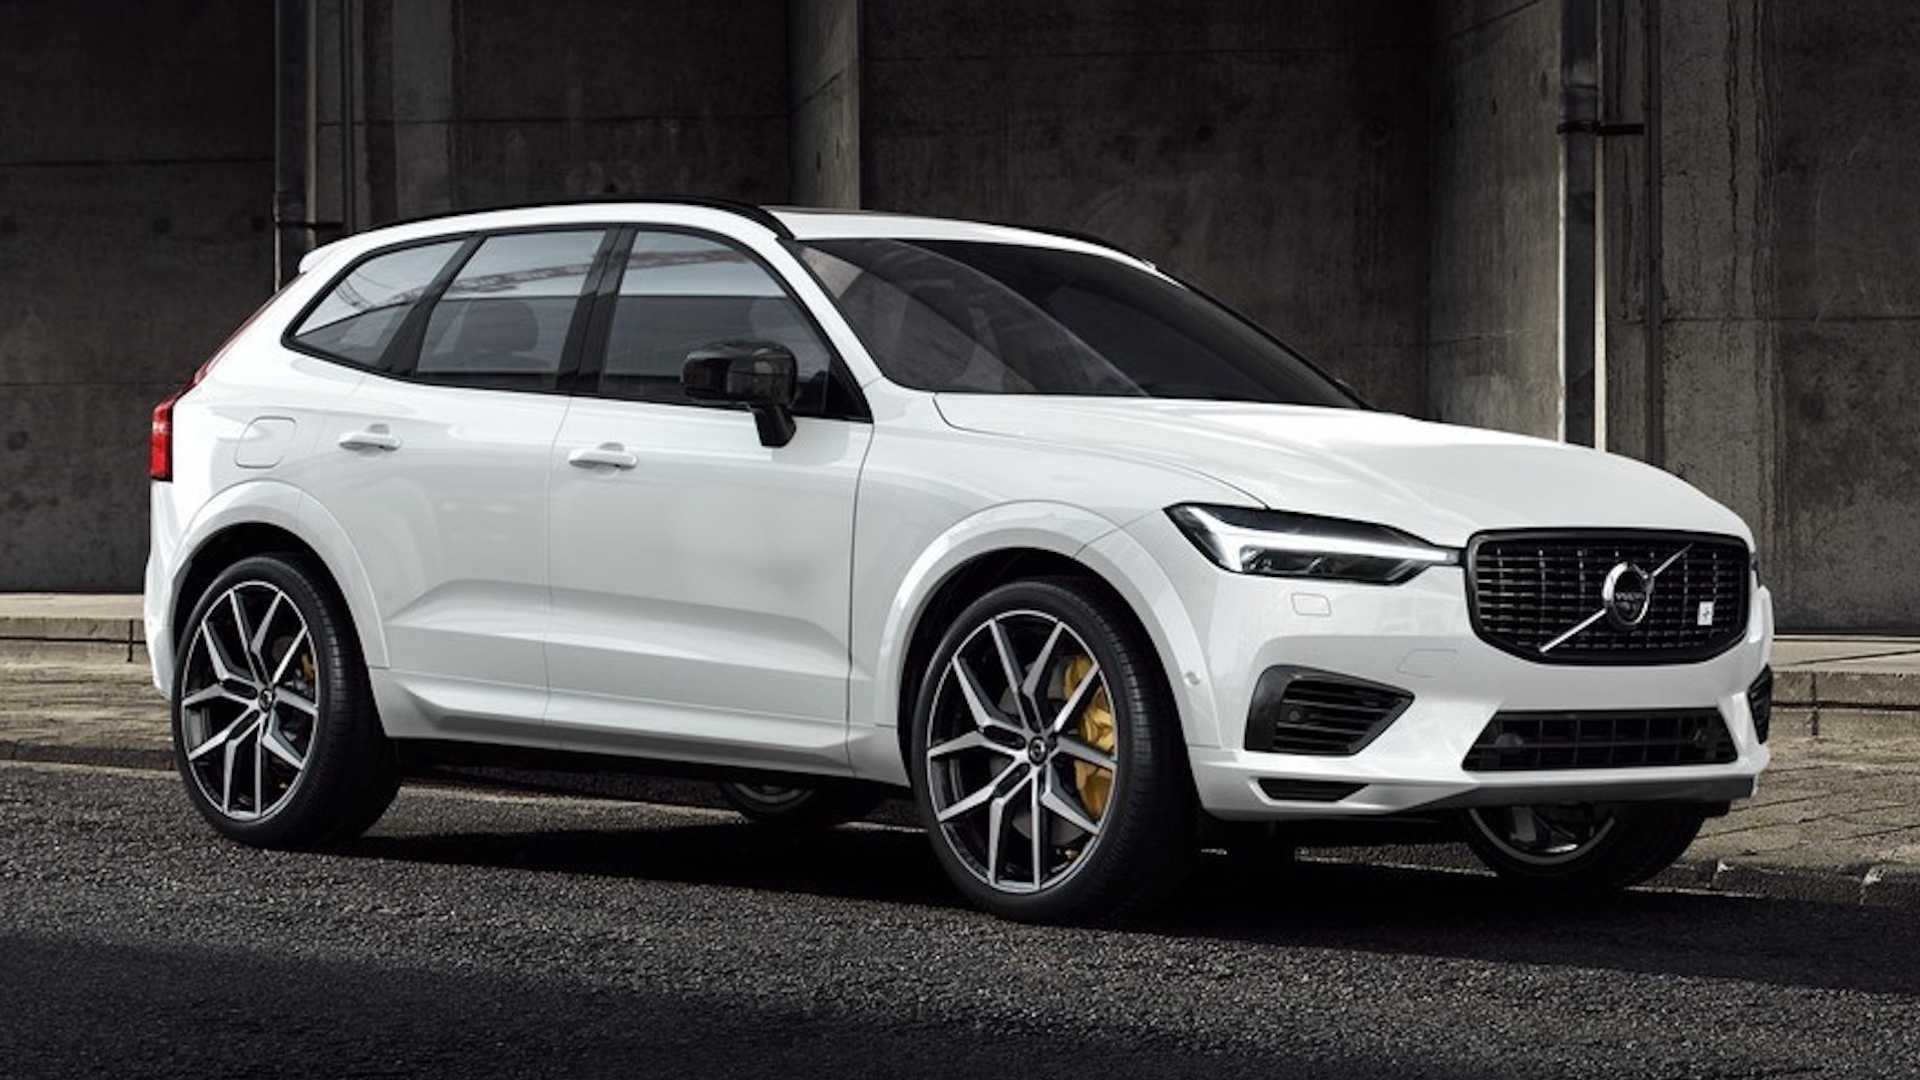 Volvo XC60 / V60 Polestar Engineered